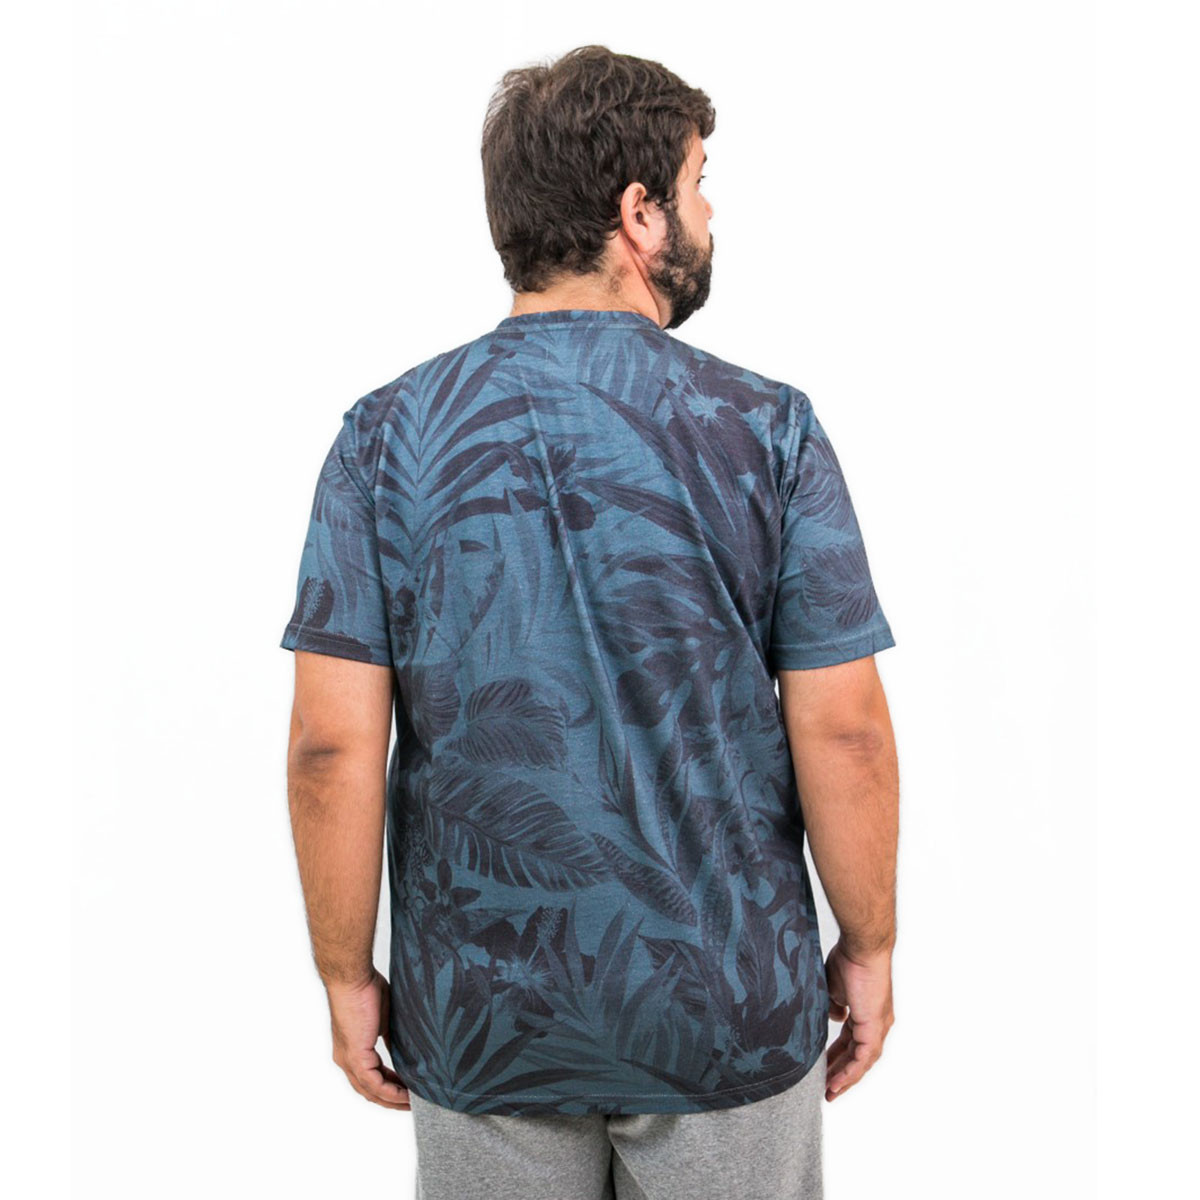 Camiseta Plus Size Masculina Blue Flower